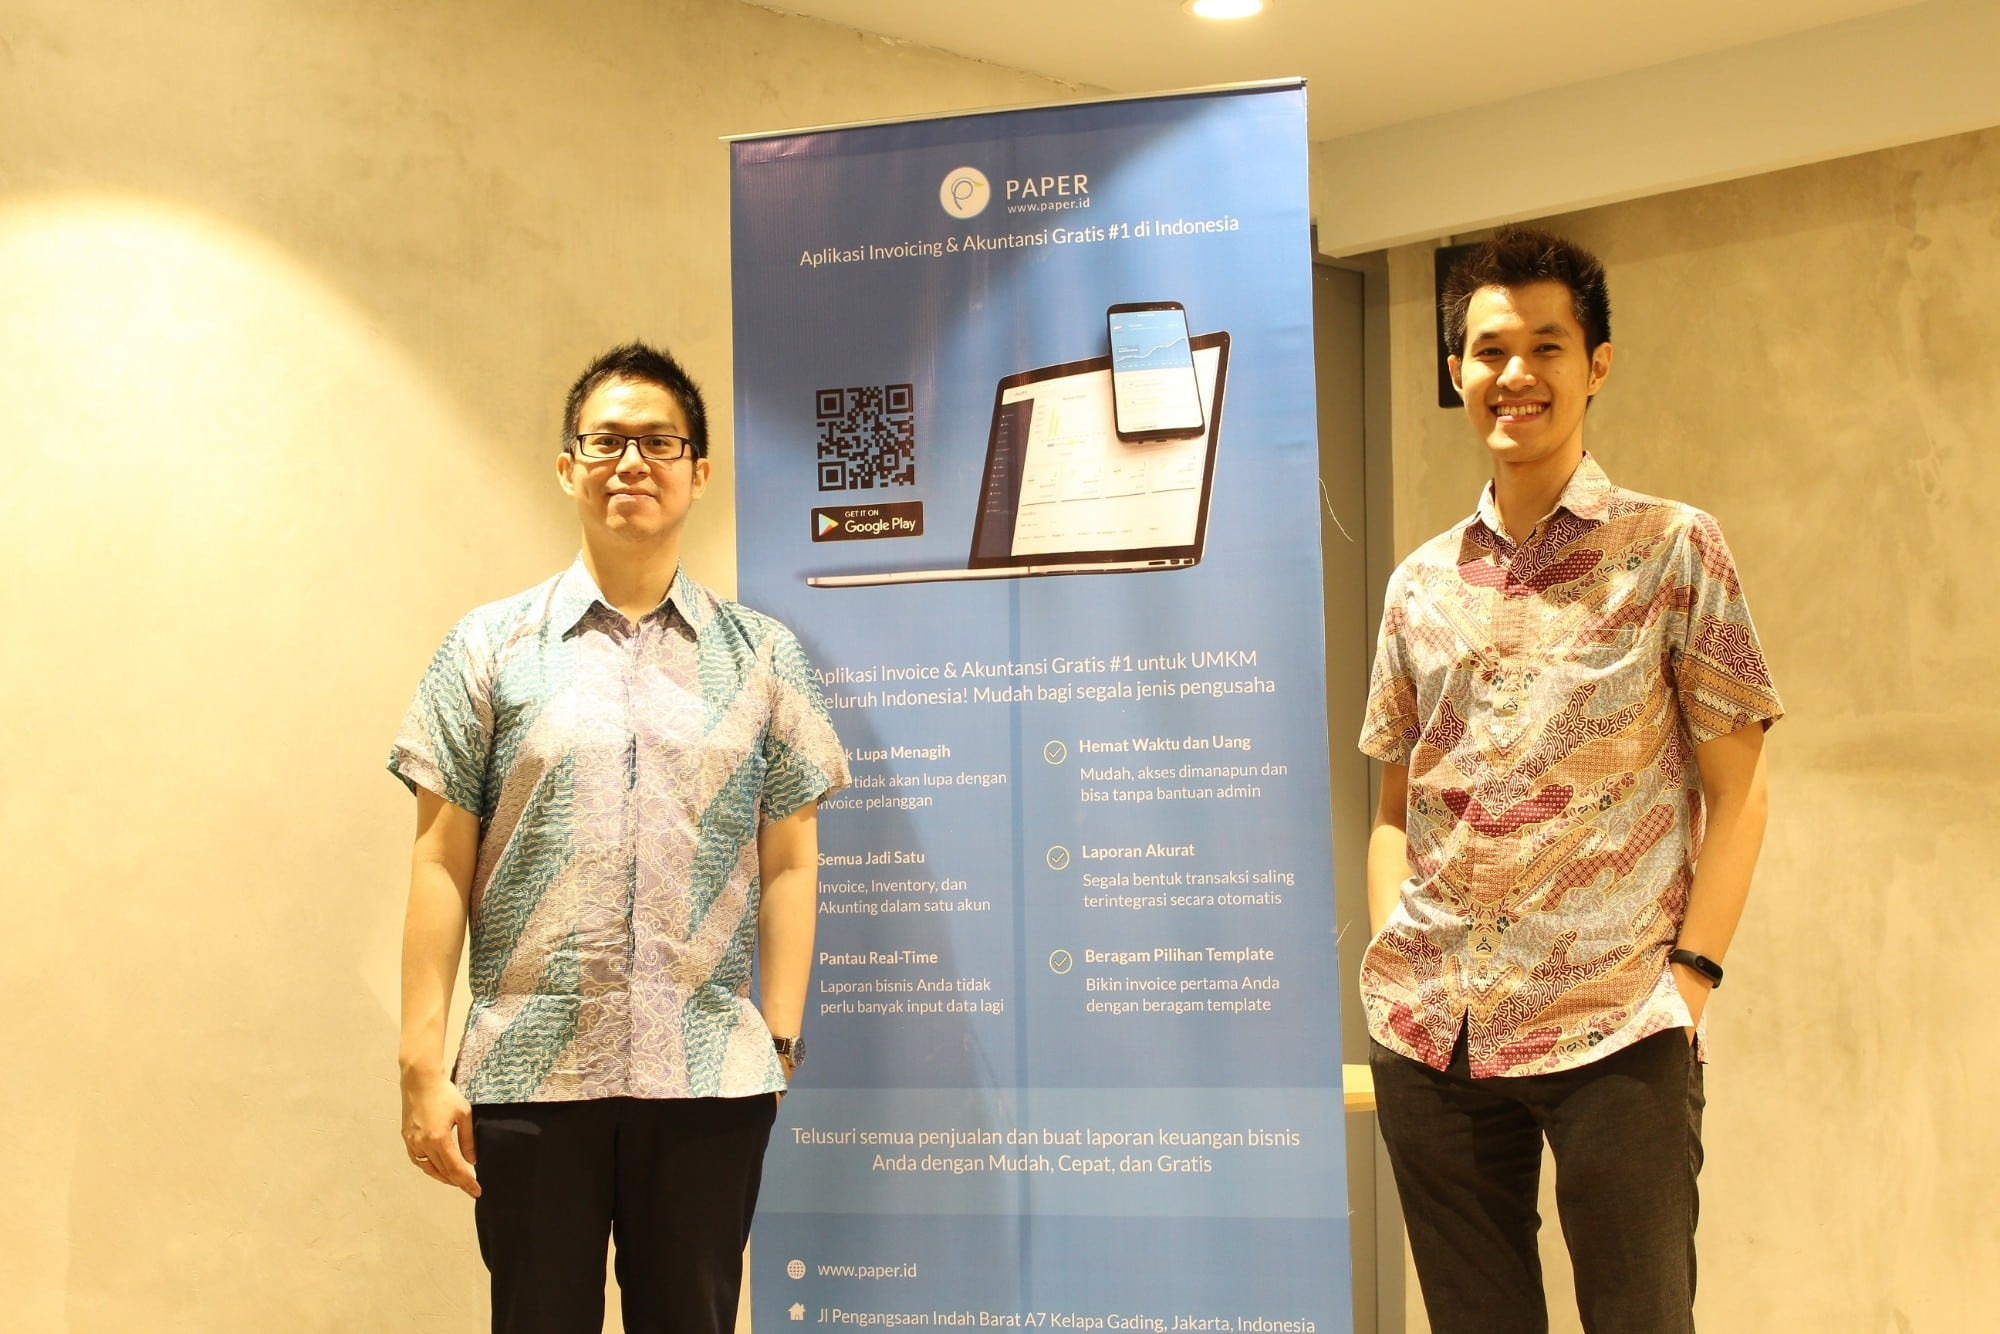 Paper.id Series A Funding Invesment